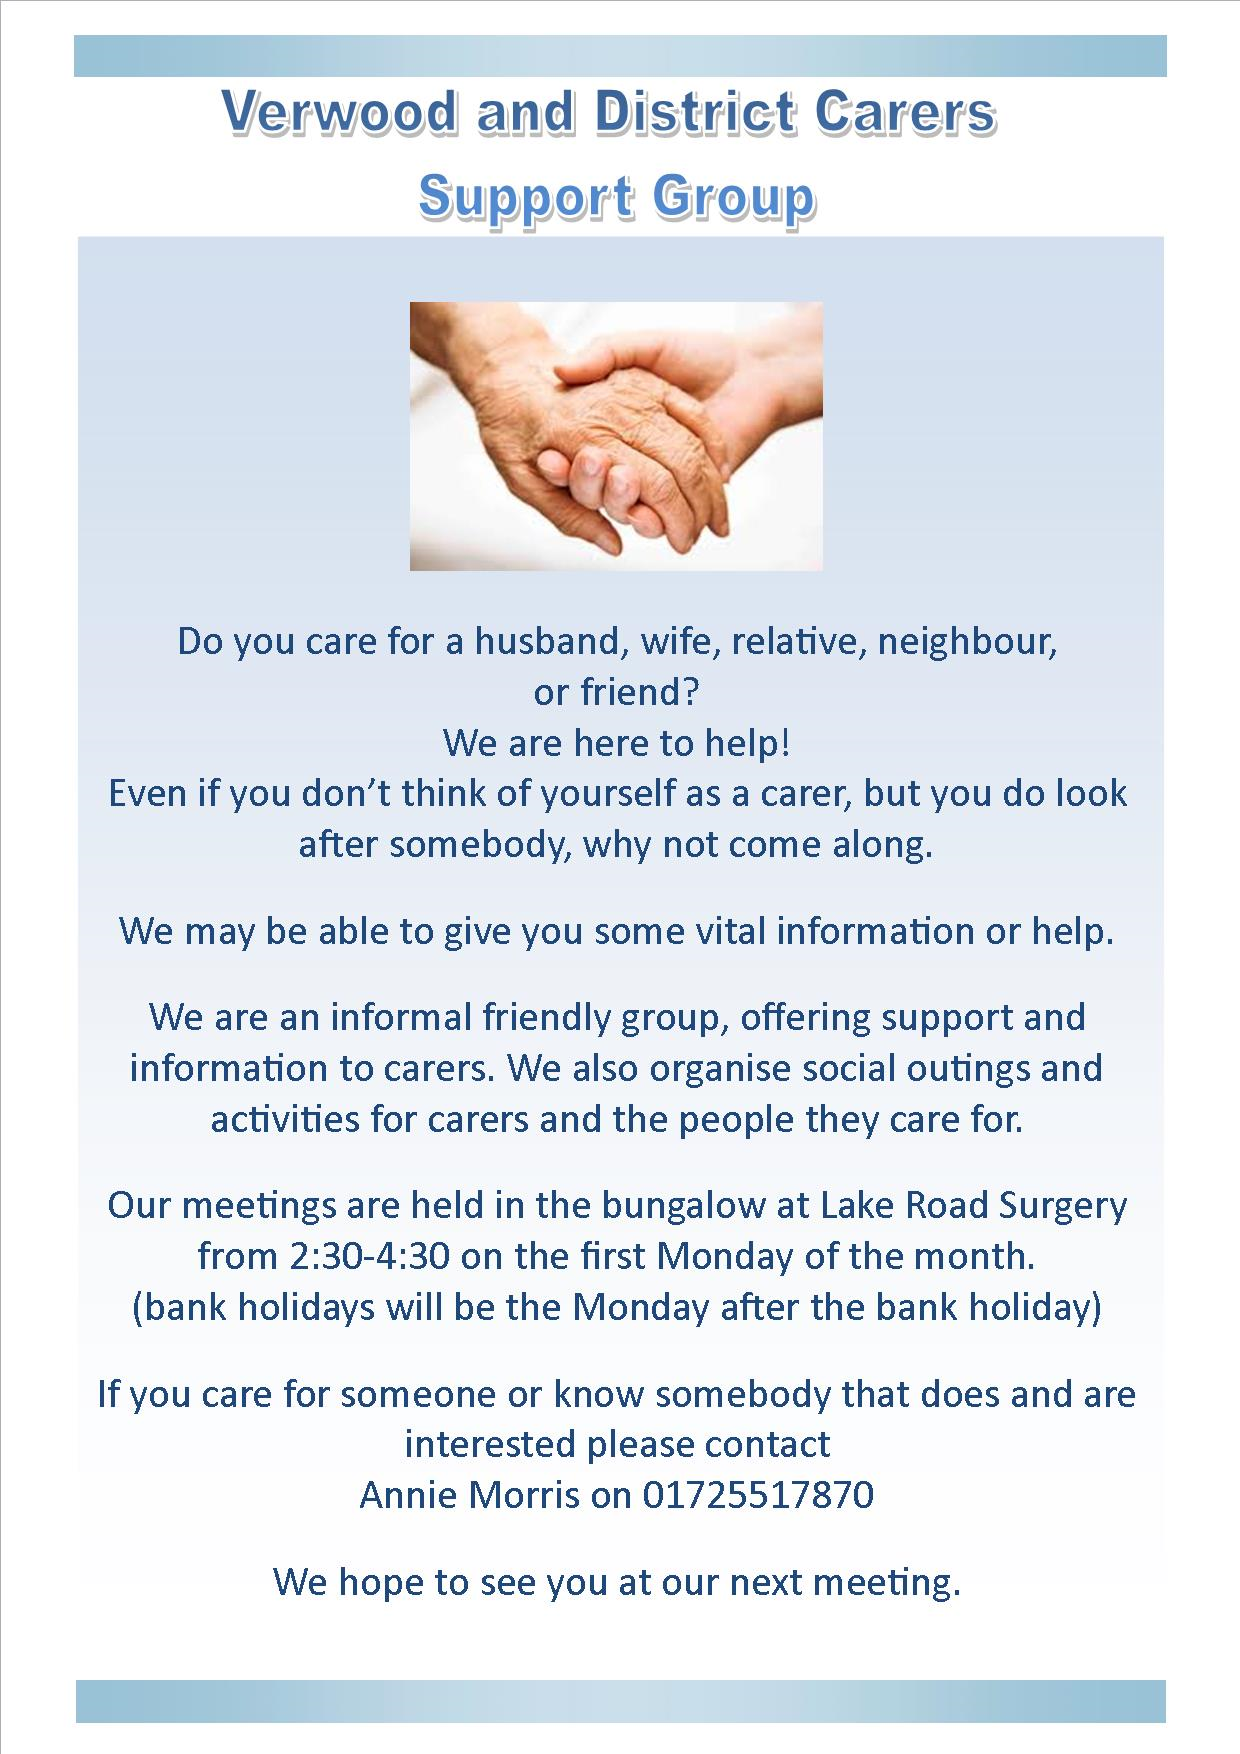 Verwood and District Carers Support Group